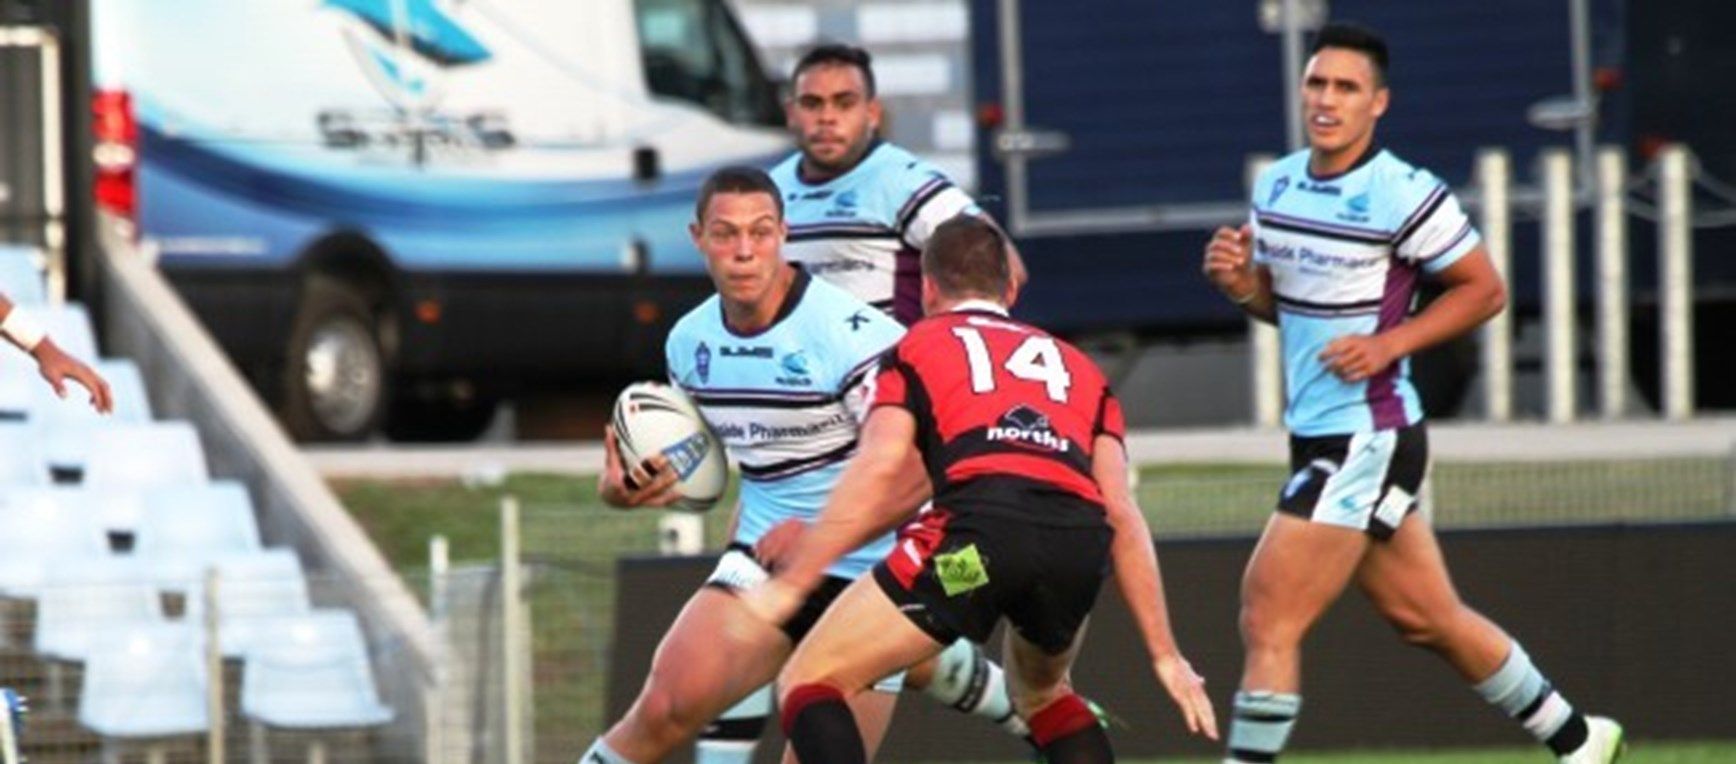 Gallery - NSW Cup Sharks v Bears